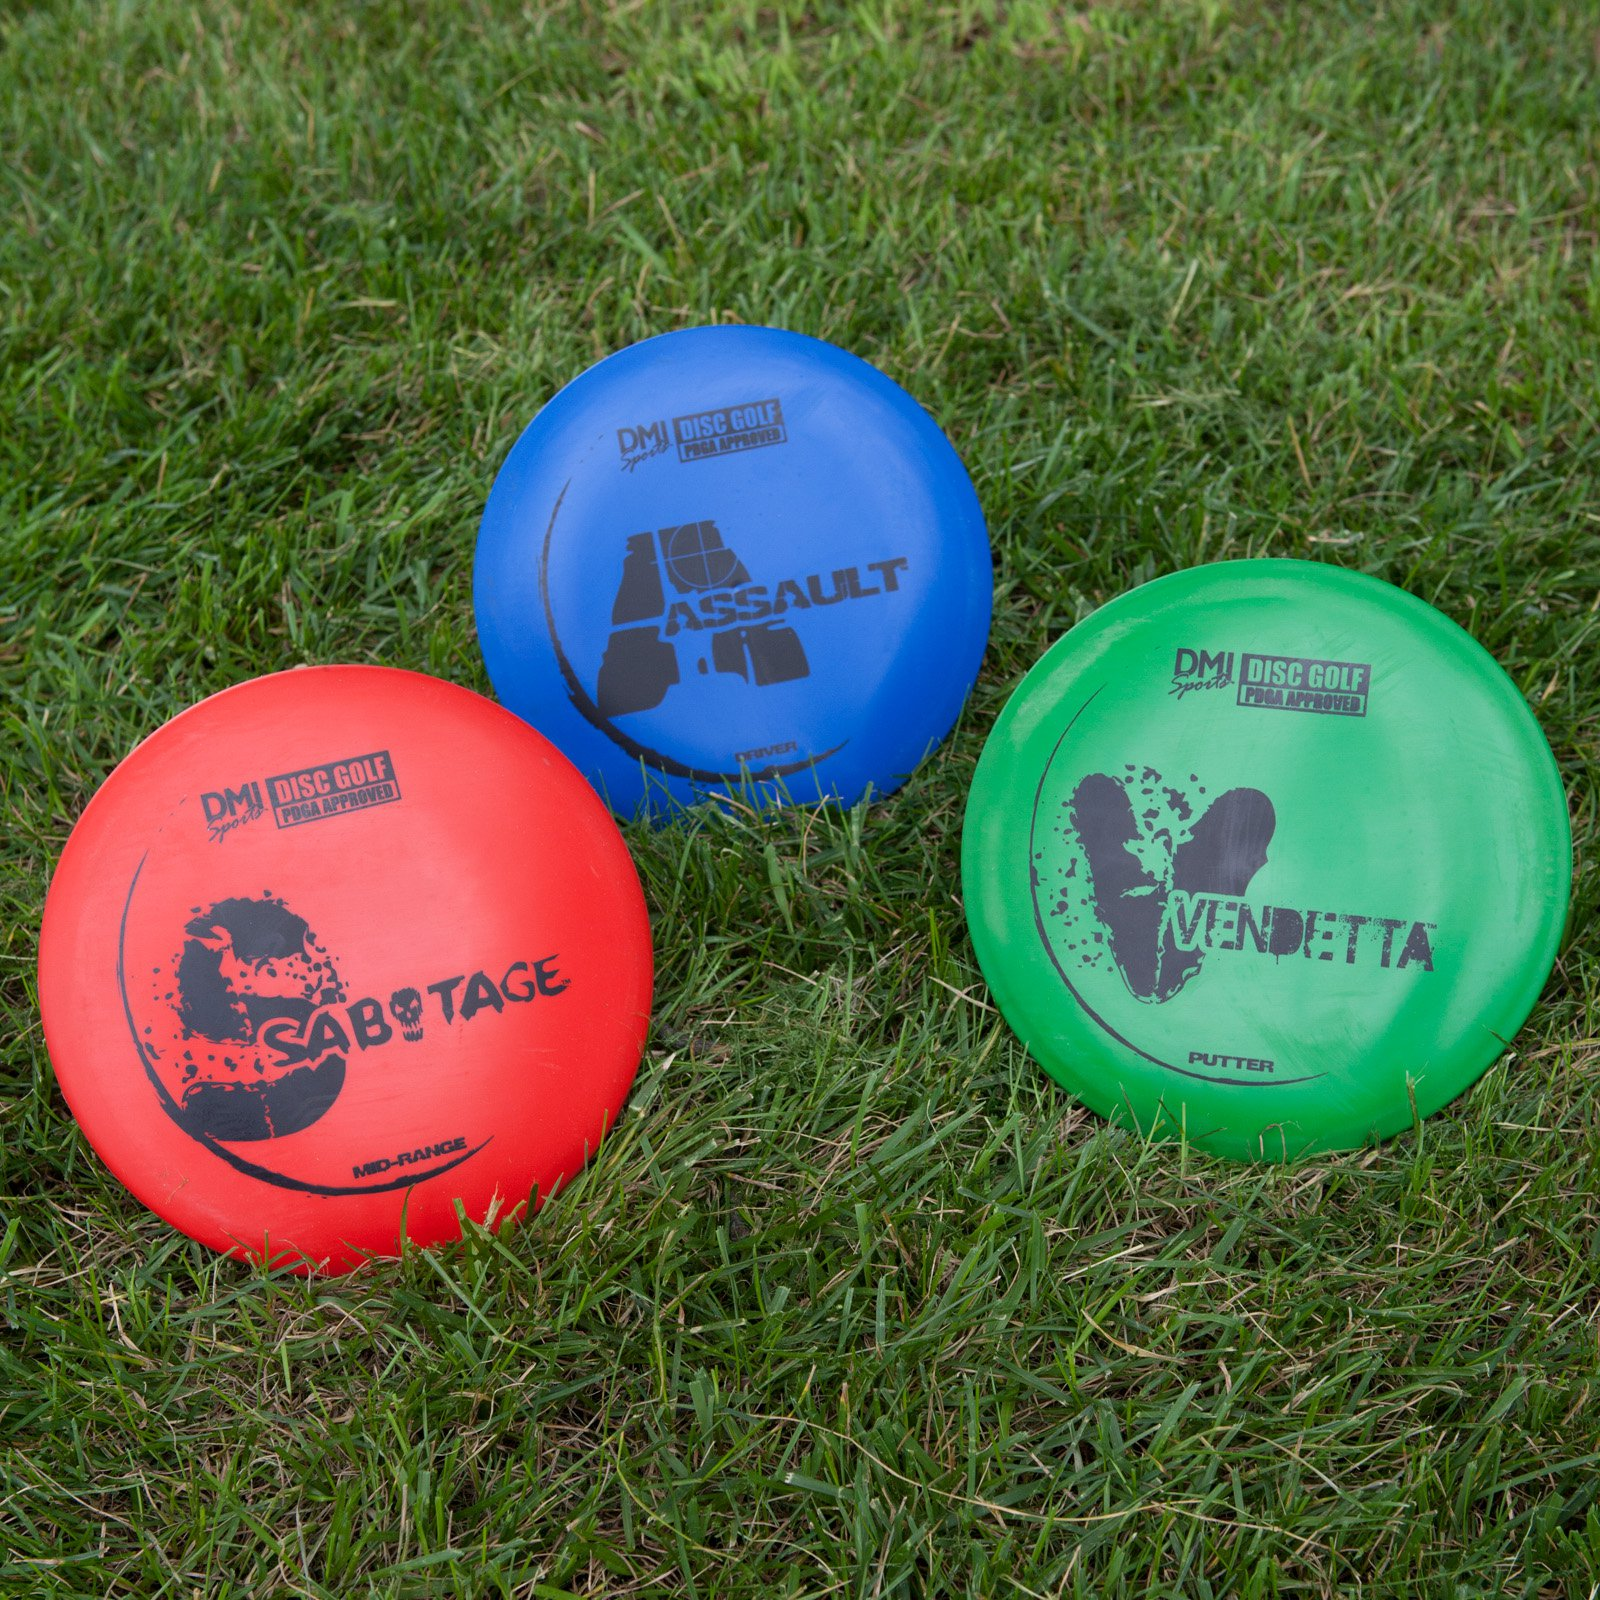 Verus Sports Expert Disc Golf Set by DMI Sports